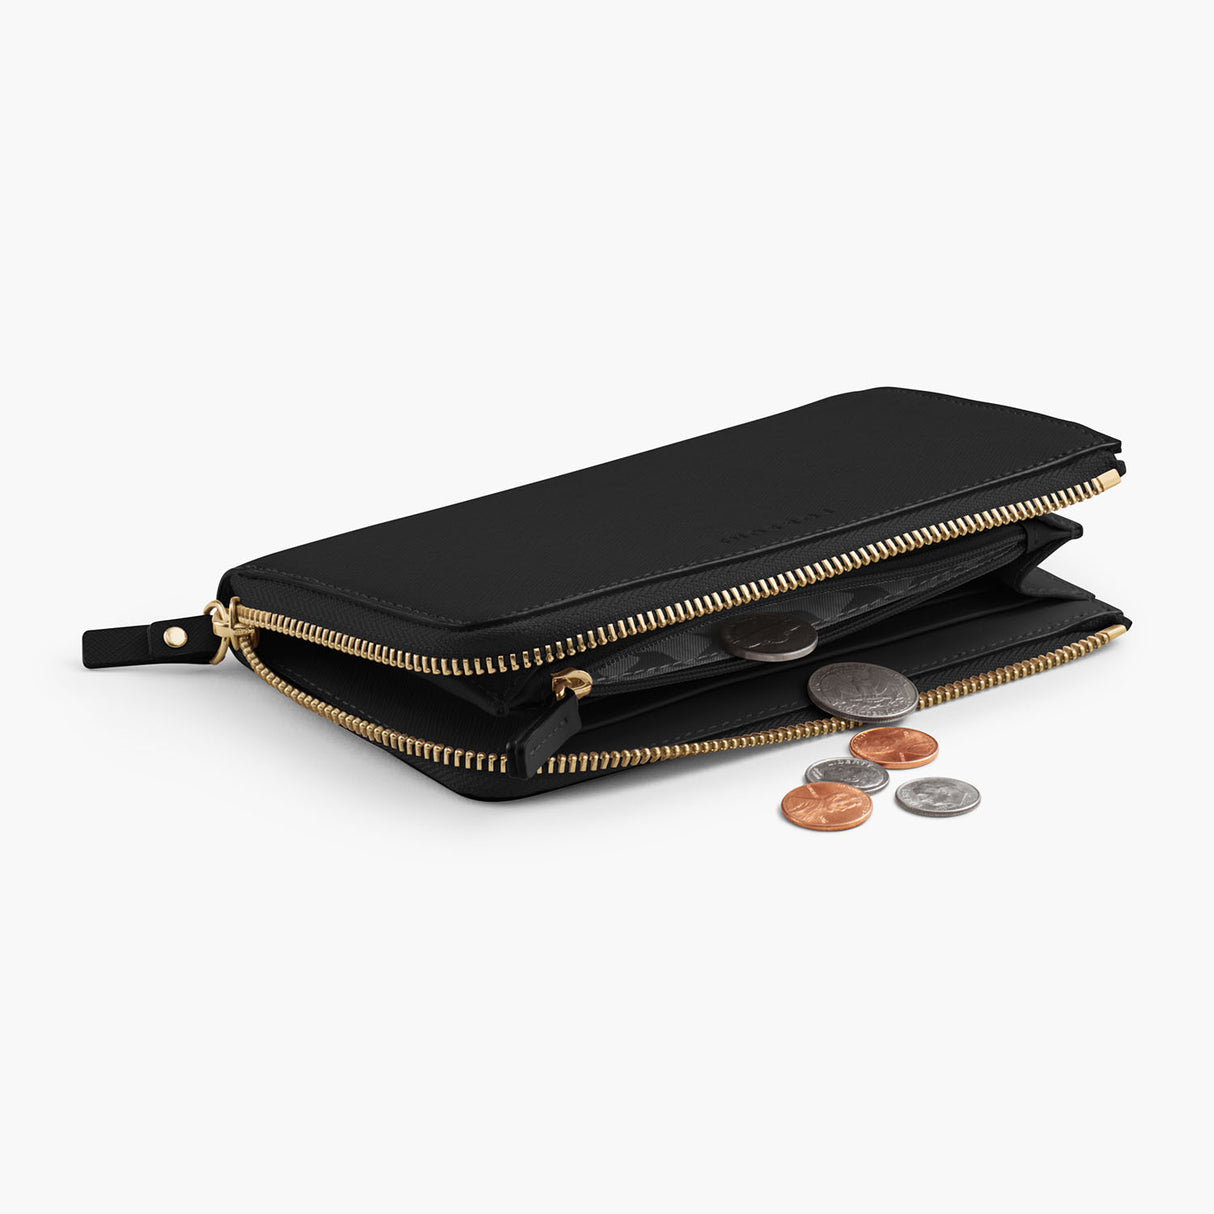 Interior Coin Pocket - The Leather Wallet - Saffiano Leather - Black / Gold / Grey - Small Accessory - Lo & Sons